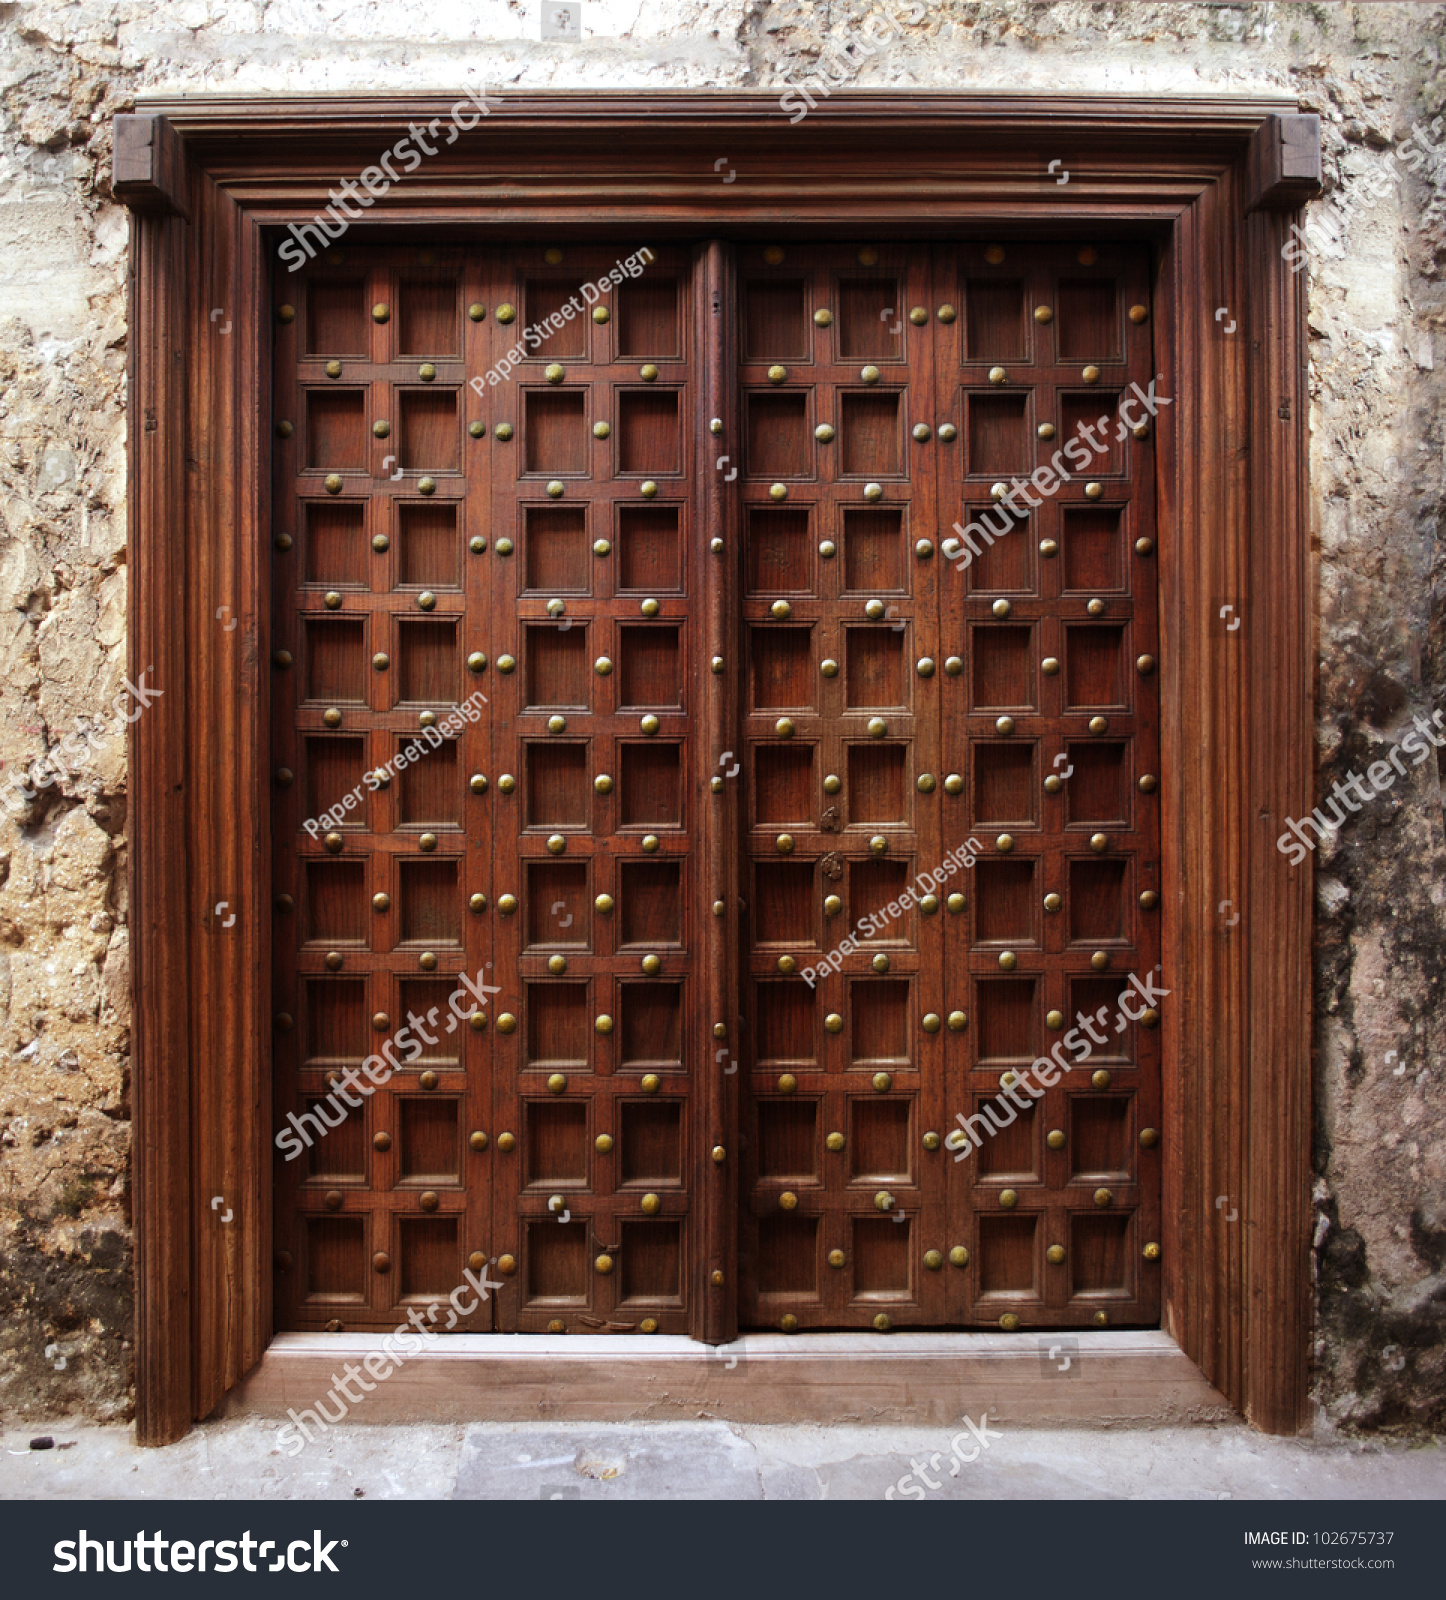 Antique Indian style Wooden Door - Antique Indian Style Wooden Door Stock Photo 102675737 - Shutterstock